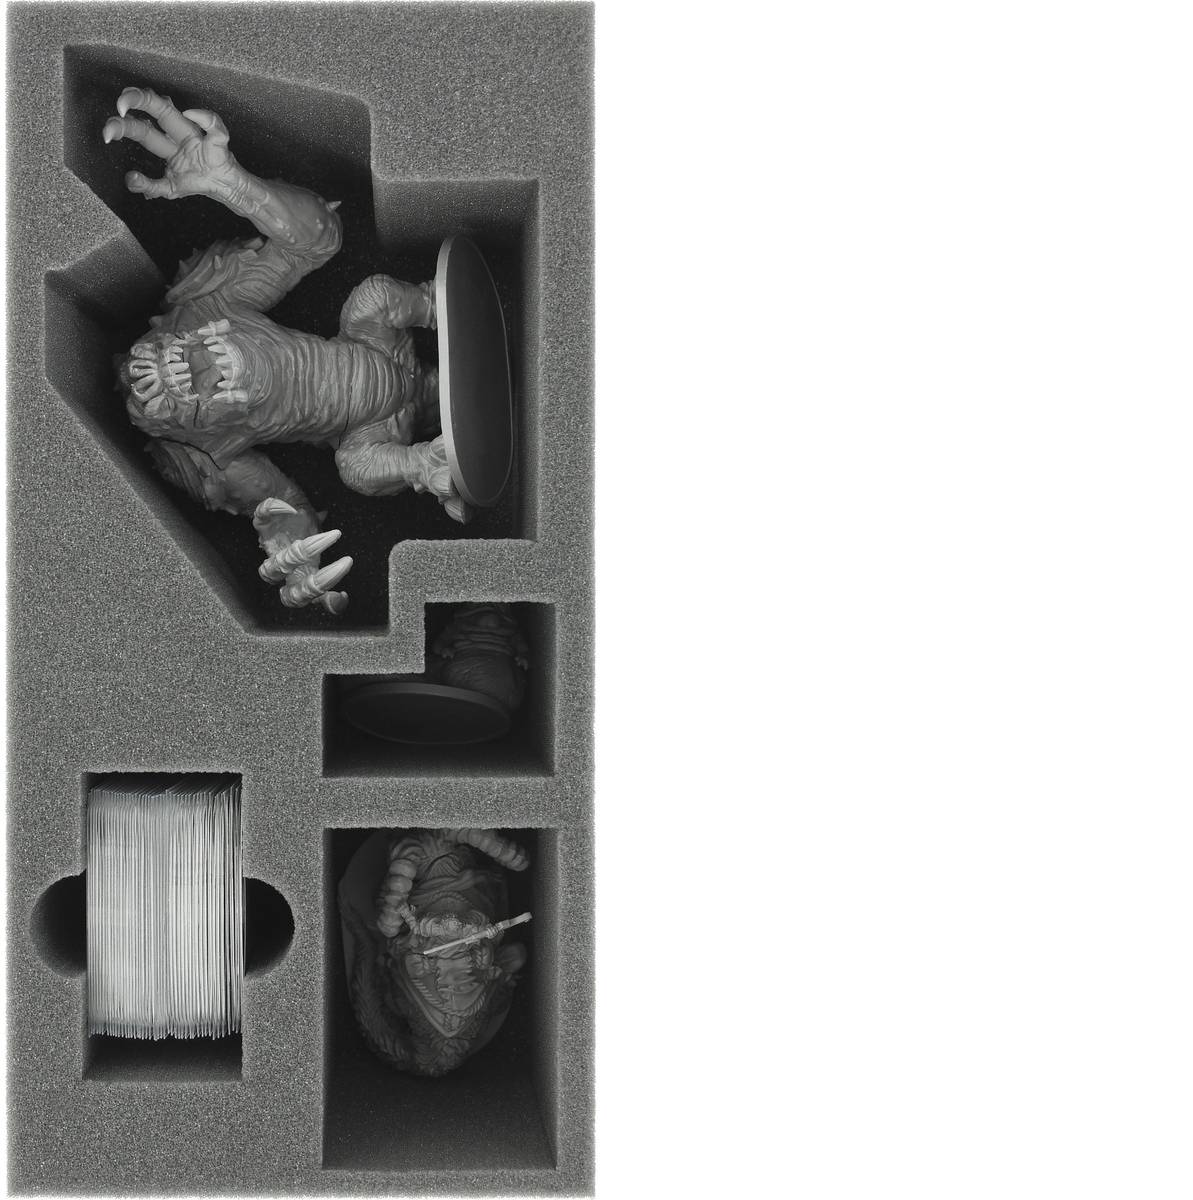 BEJG110BO 285 mm x 142,5 mm x 110 mm foam tray for Imperial Assault: Jabba's Realm - Rancor